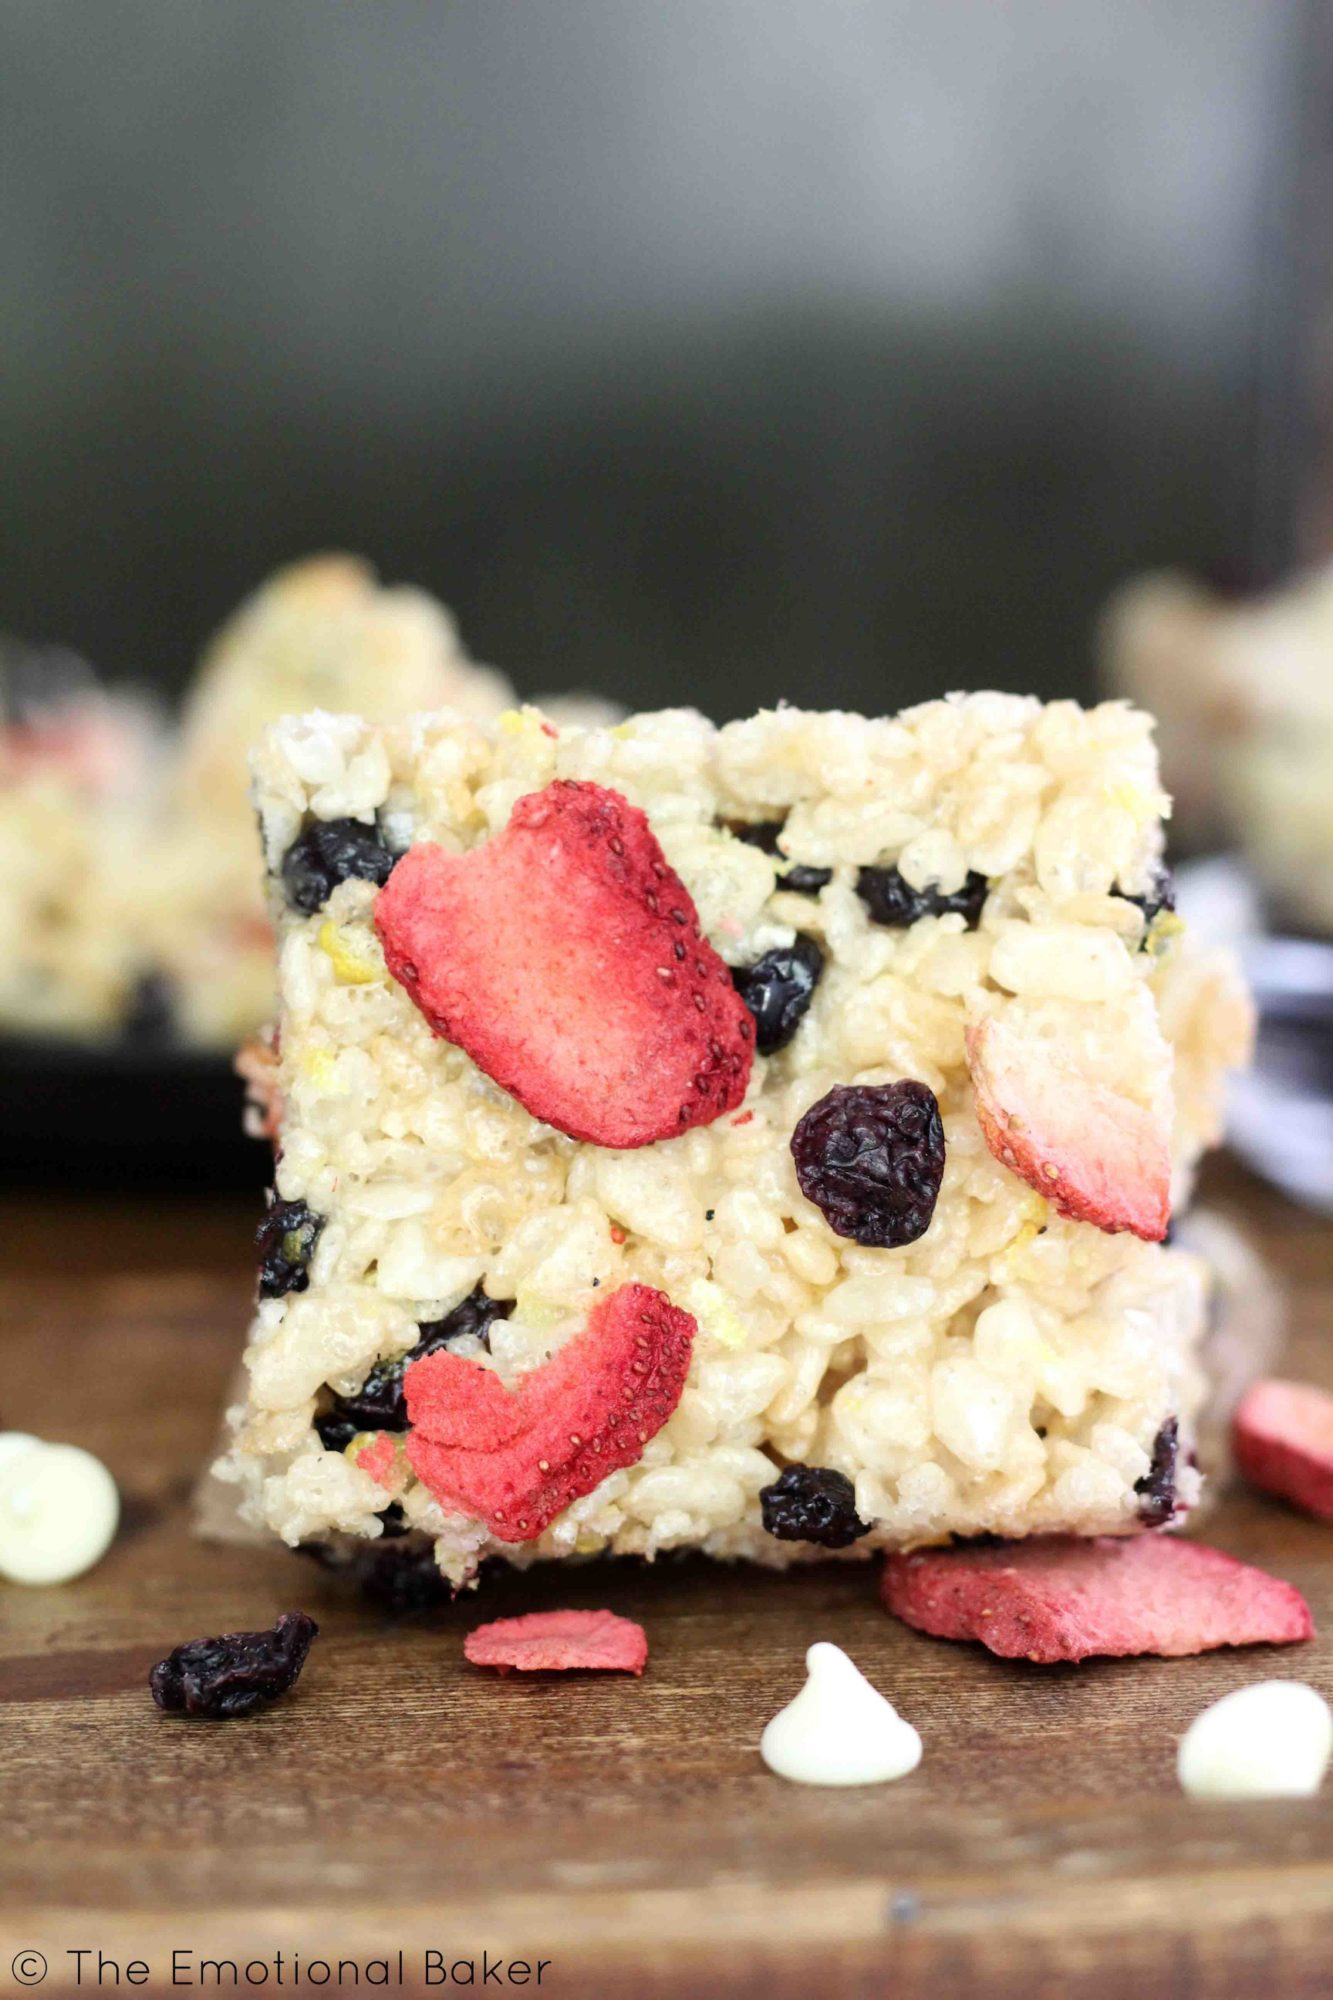 Rice Krispie Treats get an update with lemon zest, dried blueberries, freeze dried strawberries and white chocolate